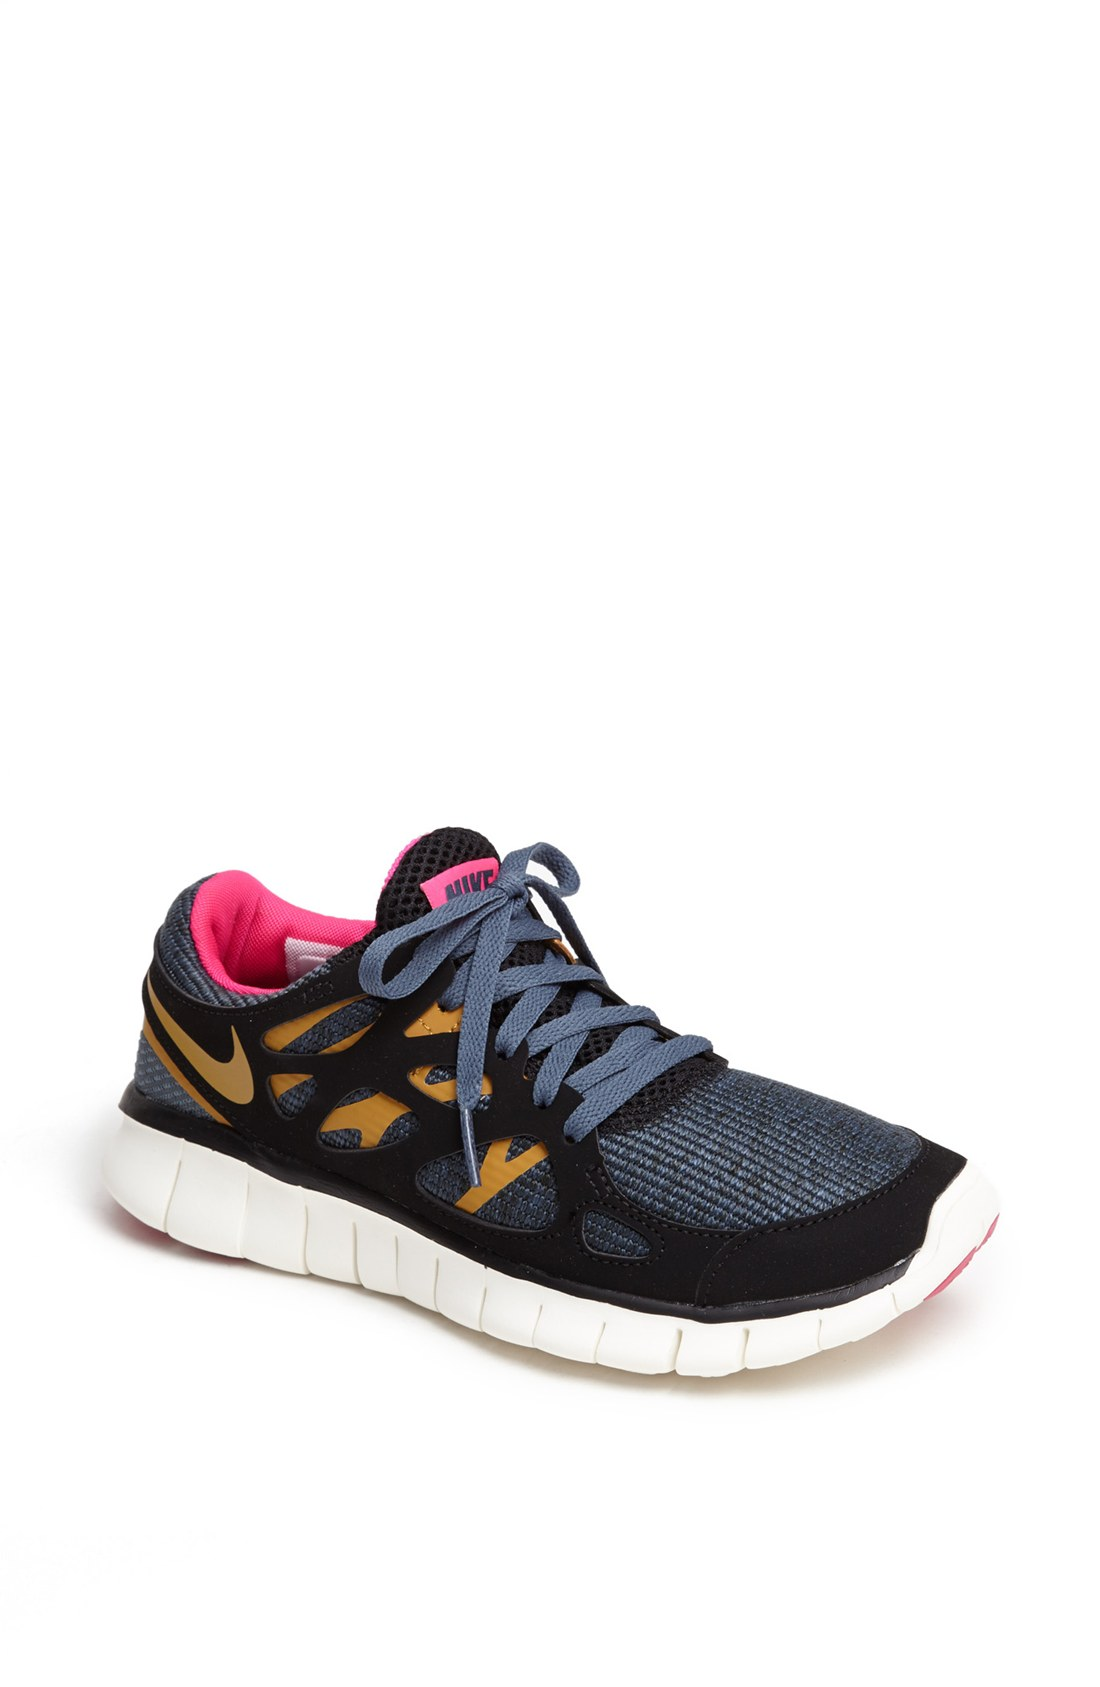 nike free run 2 ext running shoe in black black gold grey pink lyst. Black Bedroom Furniture Sets. Home Design Ideas